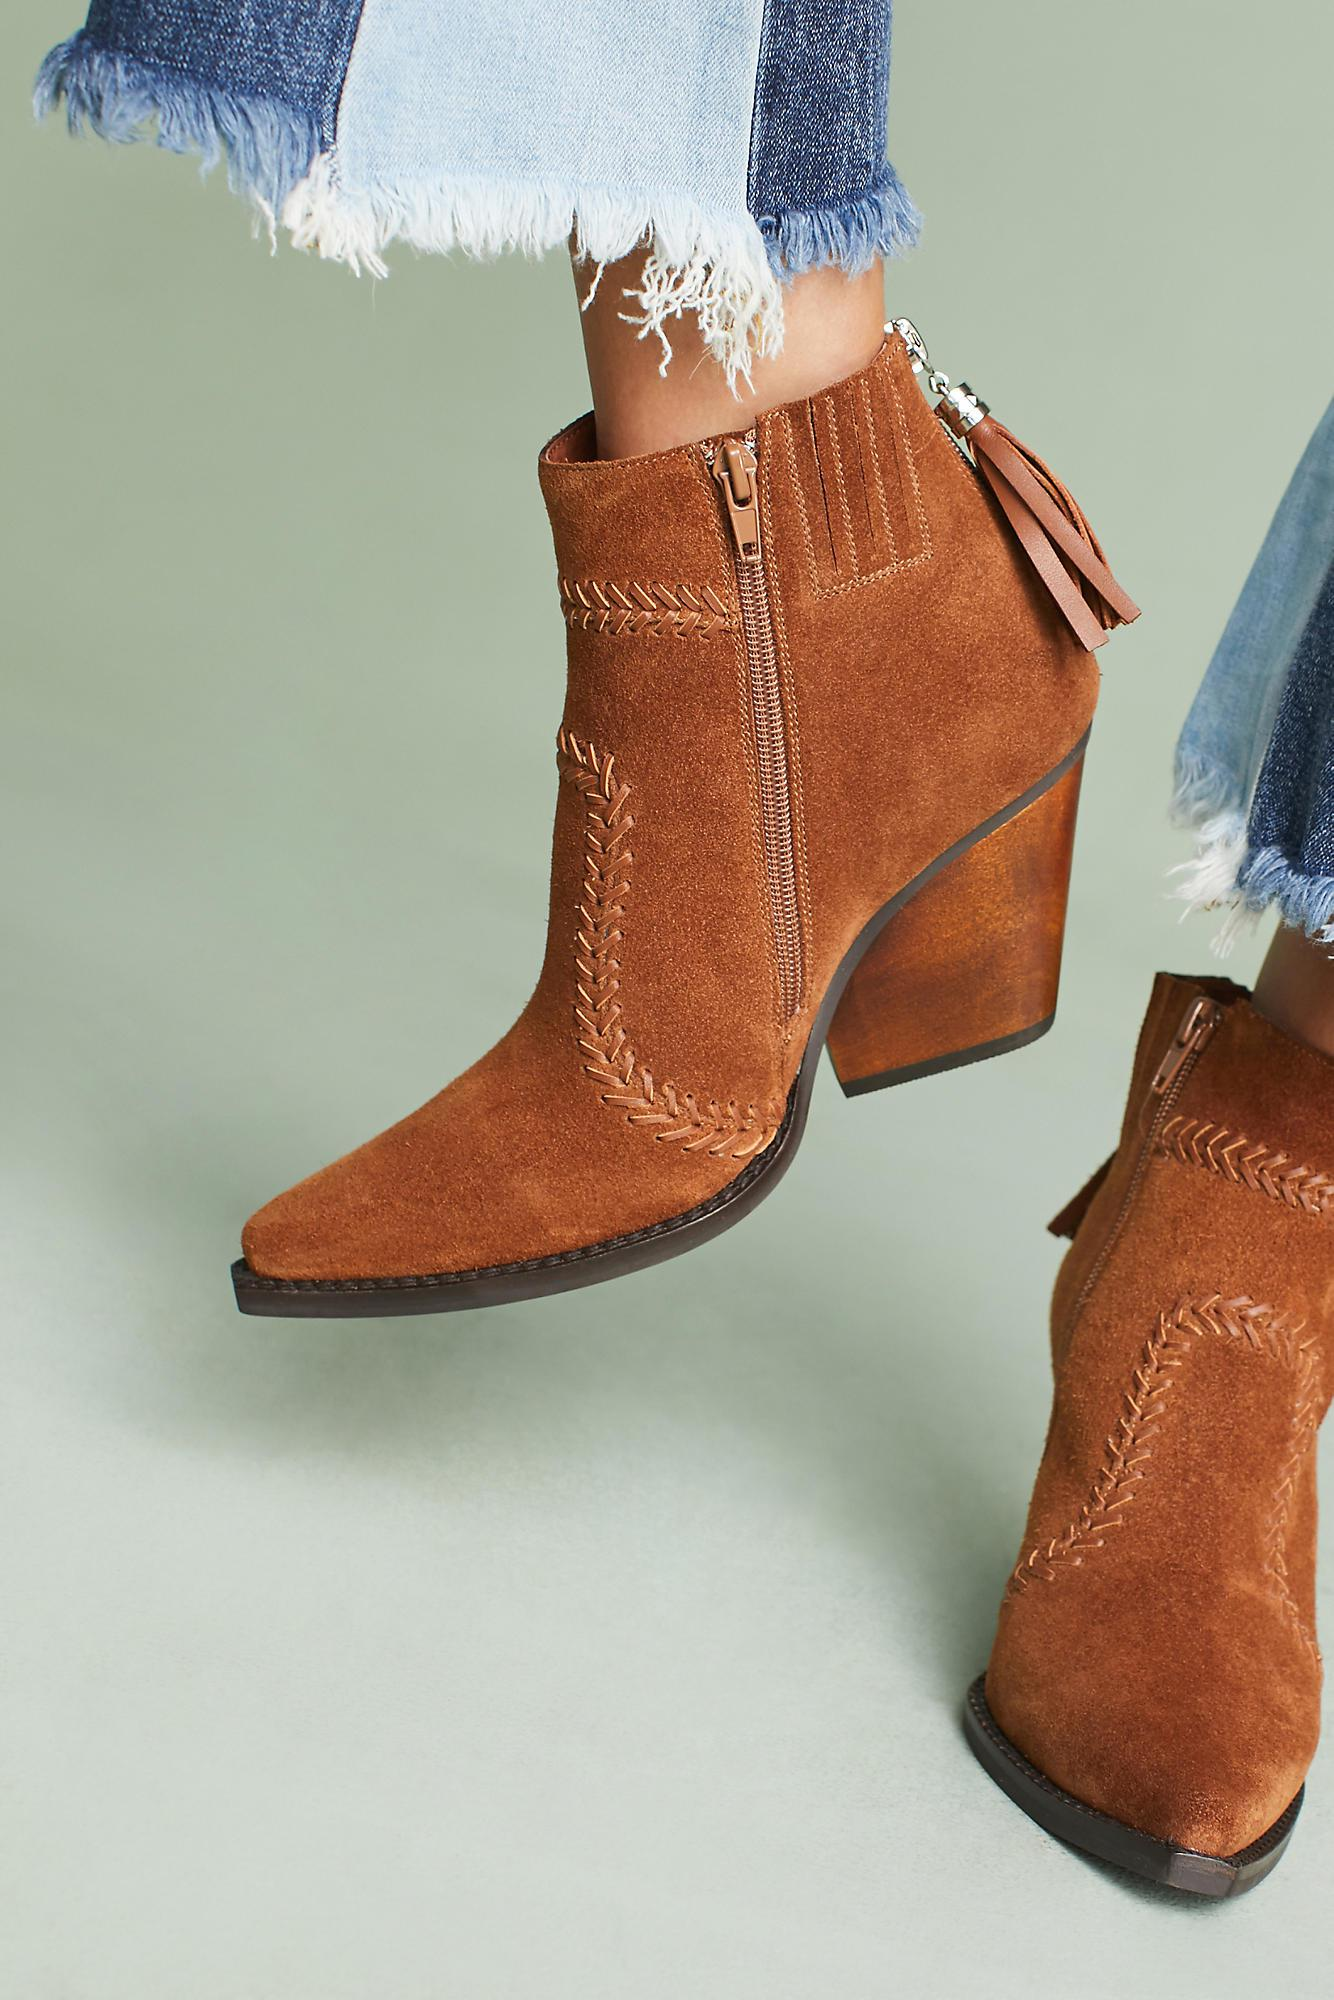 224628964cd3f Jeffrey Campbell Beowulf Ankle Boots - Lyst